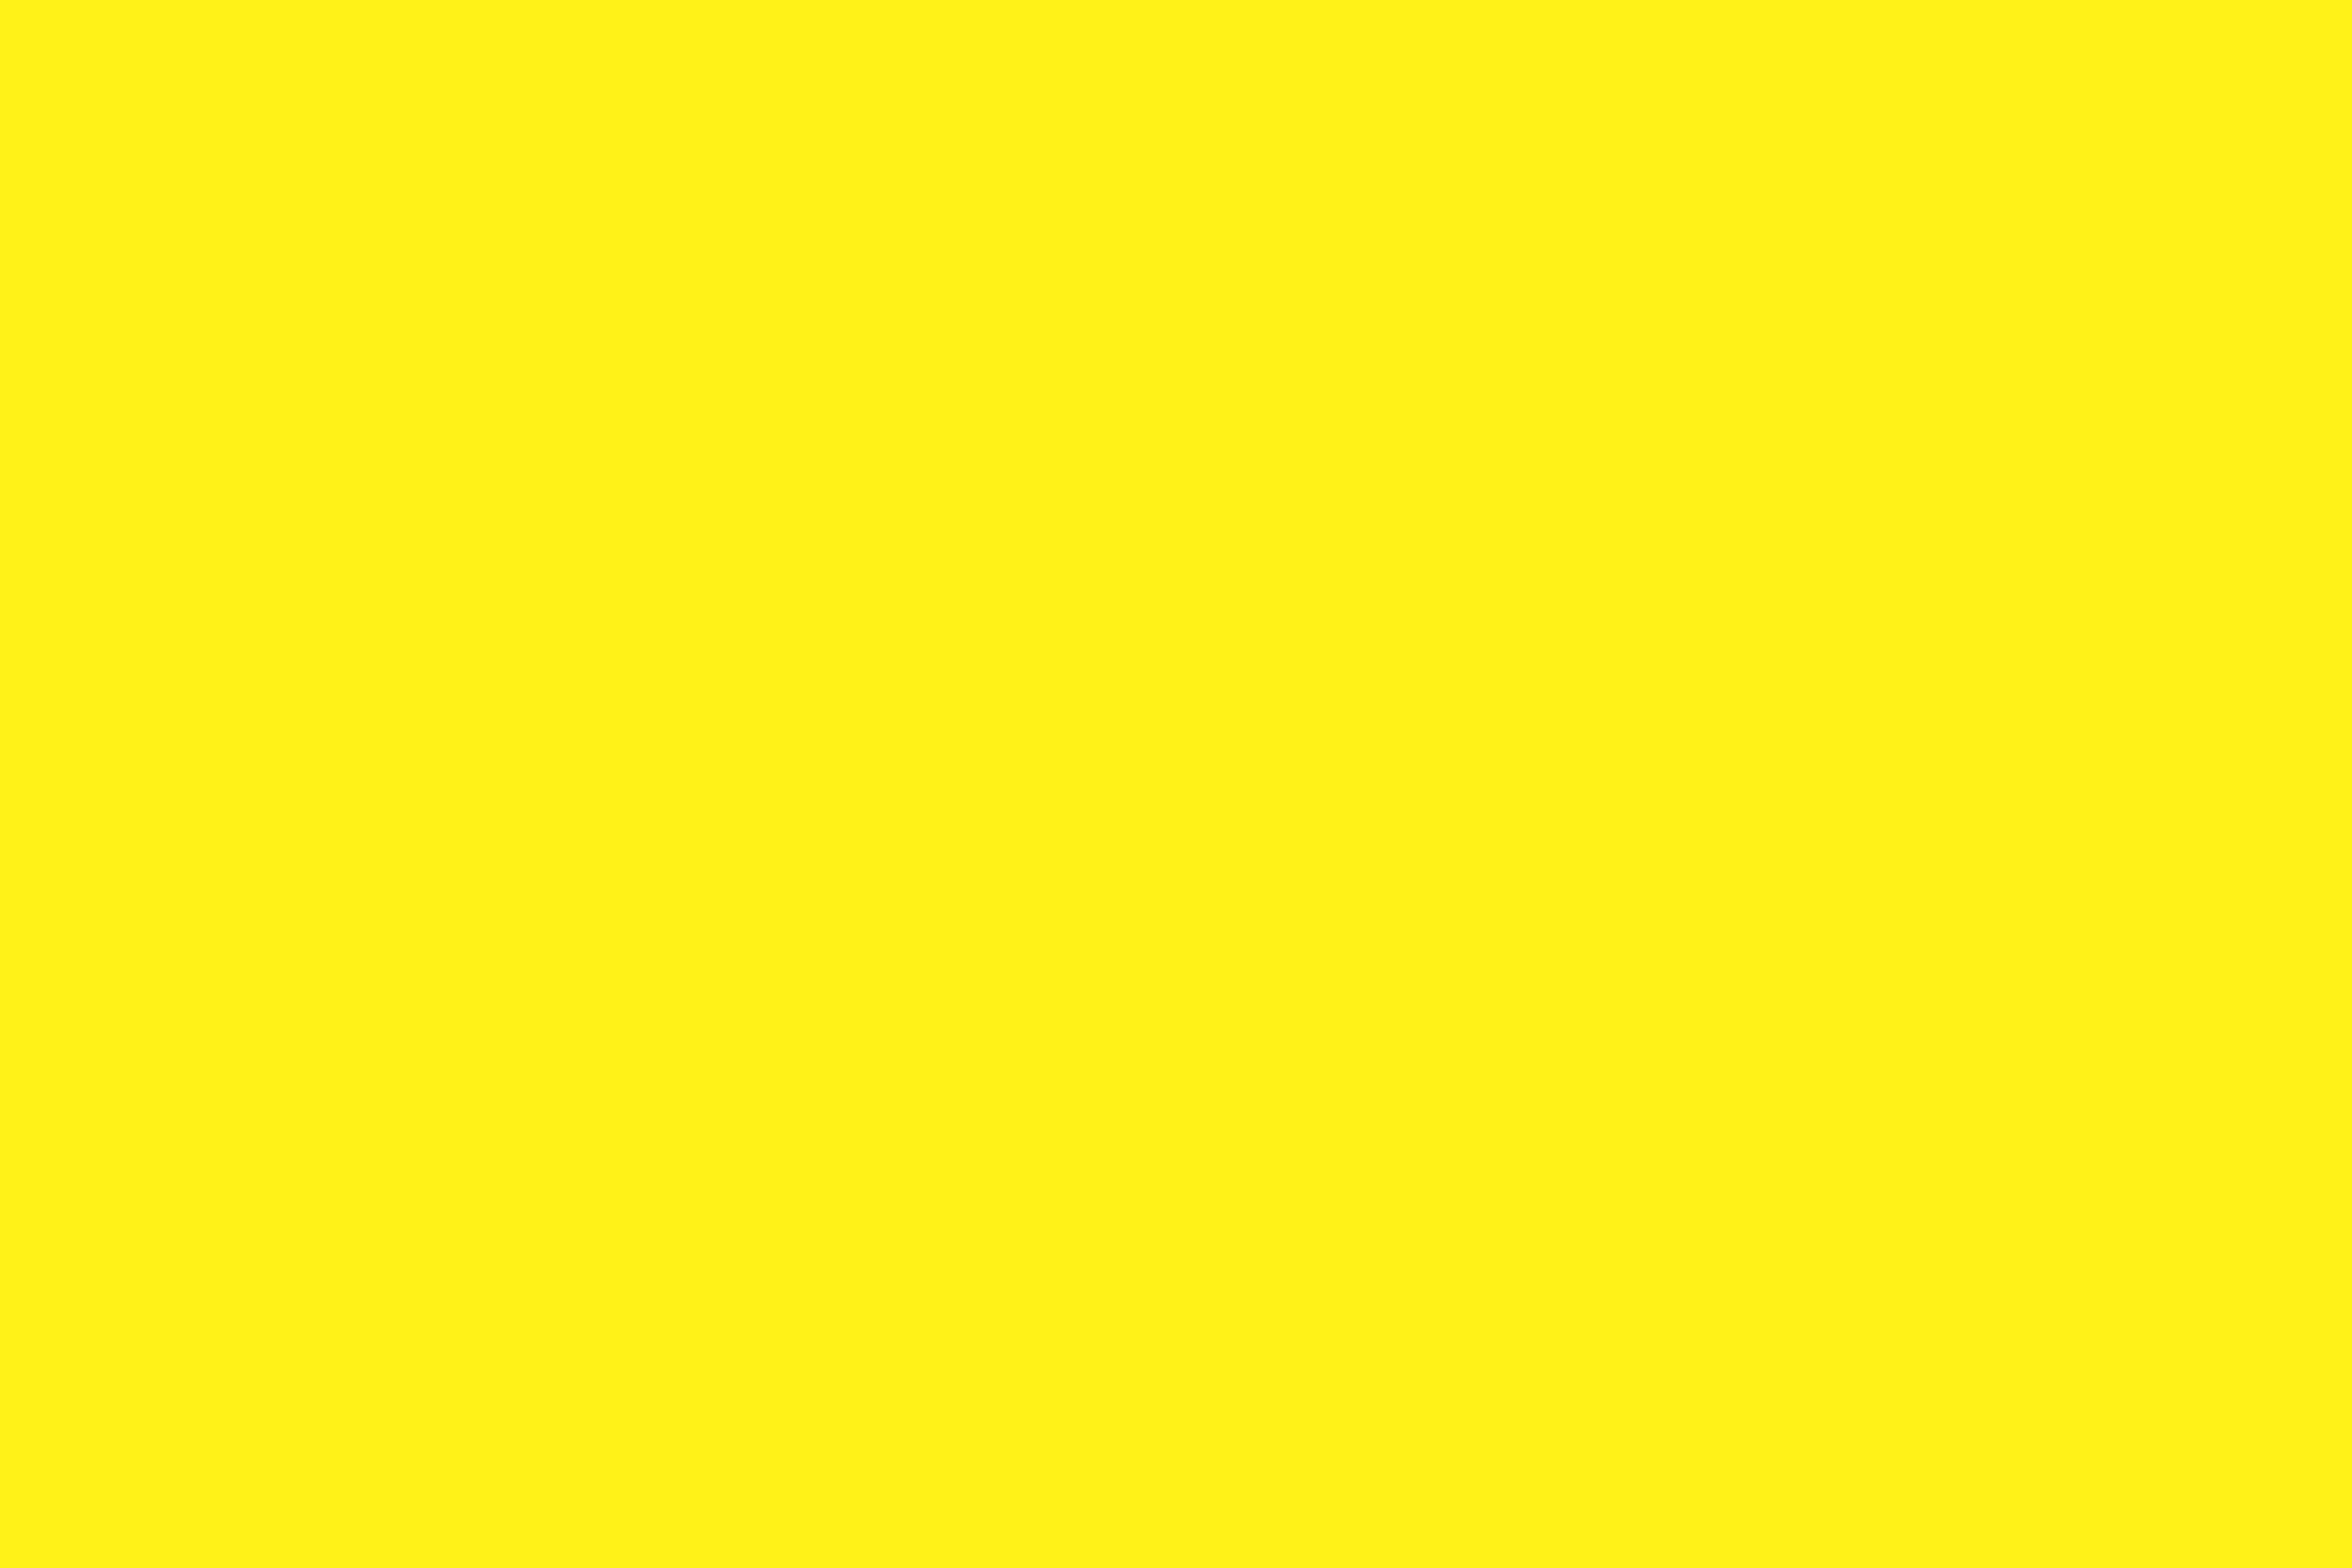 wassaic-project-color-block-yellow